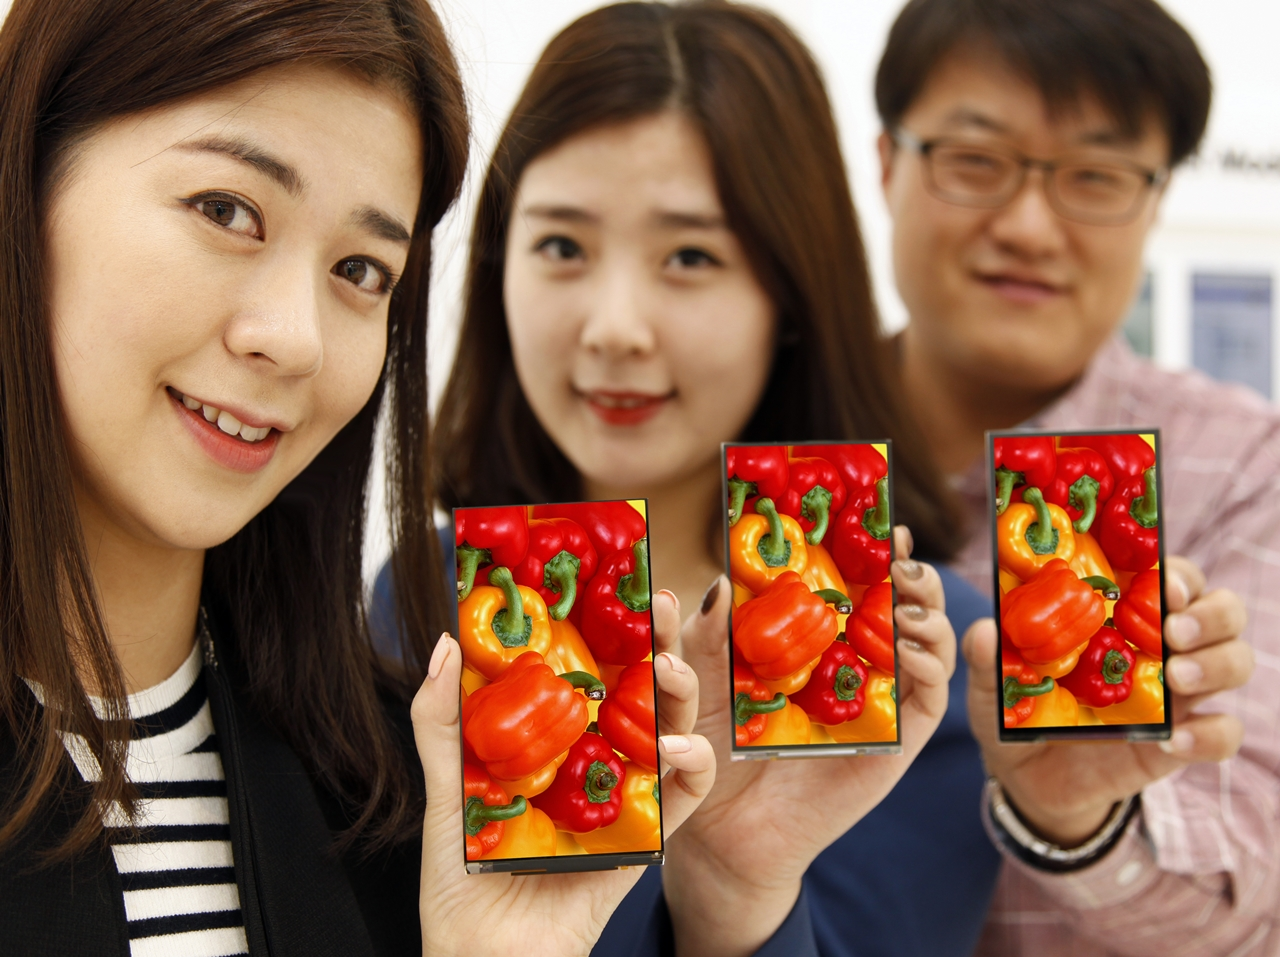 LG's Thinnest Smartphone Bezel yet